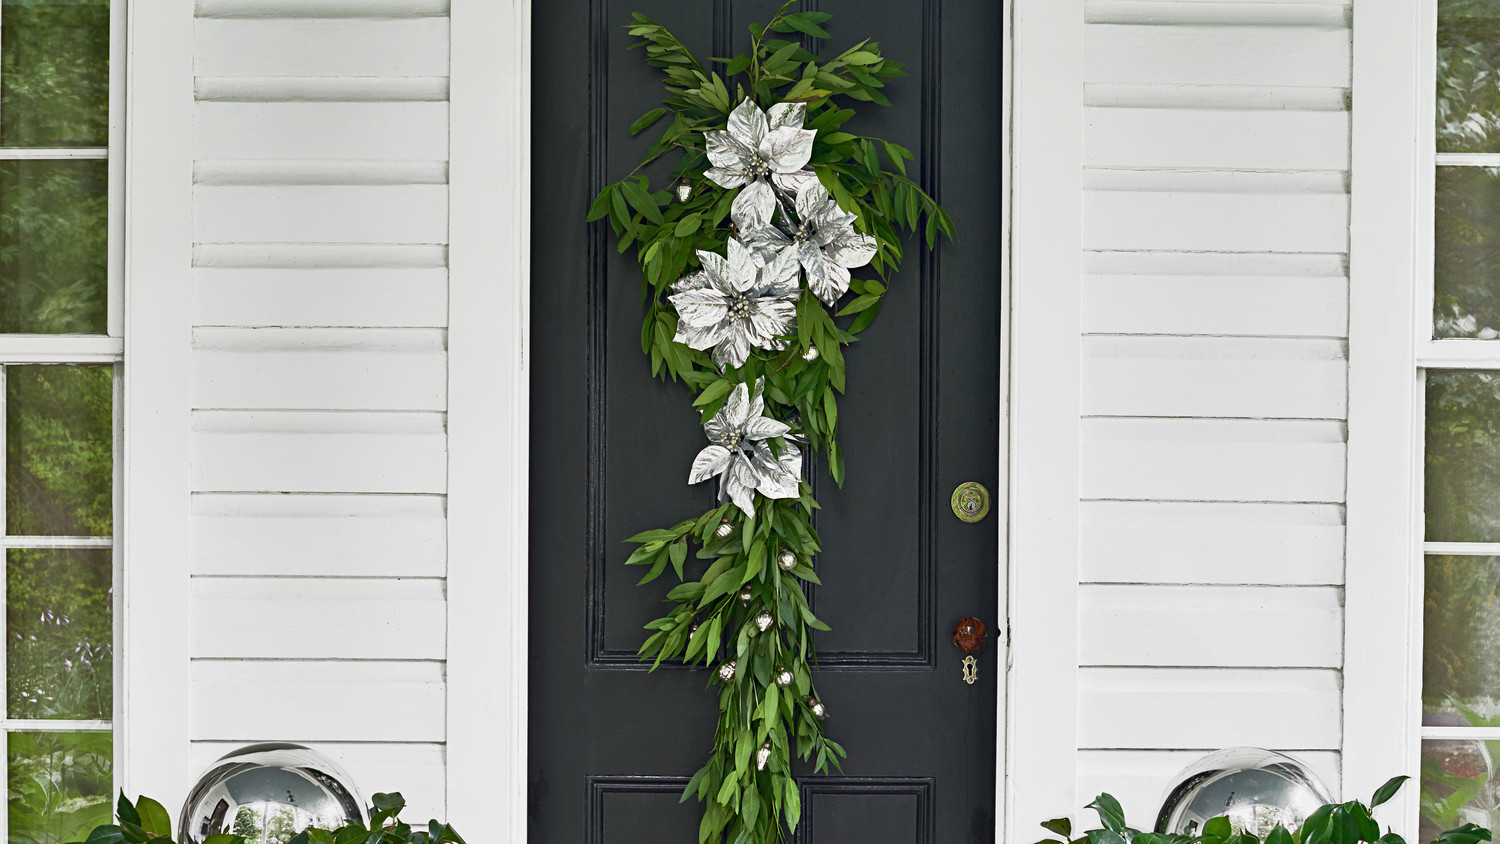 Laurel and Silver Poinsettias Decoration